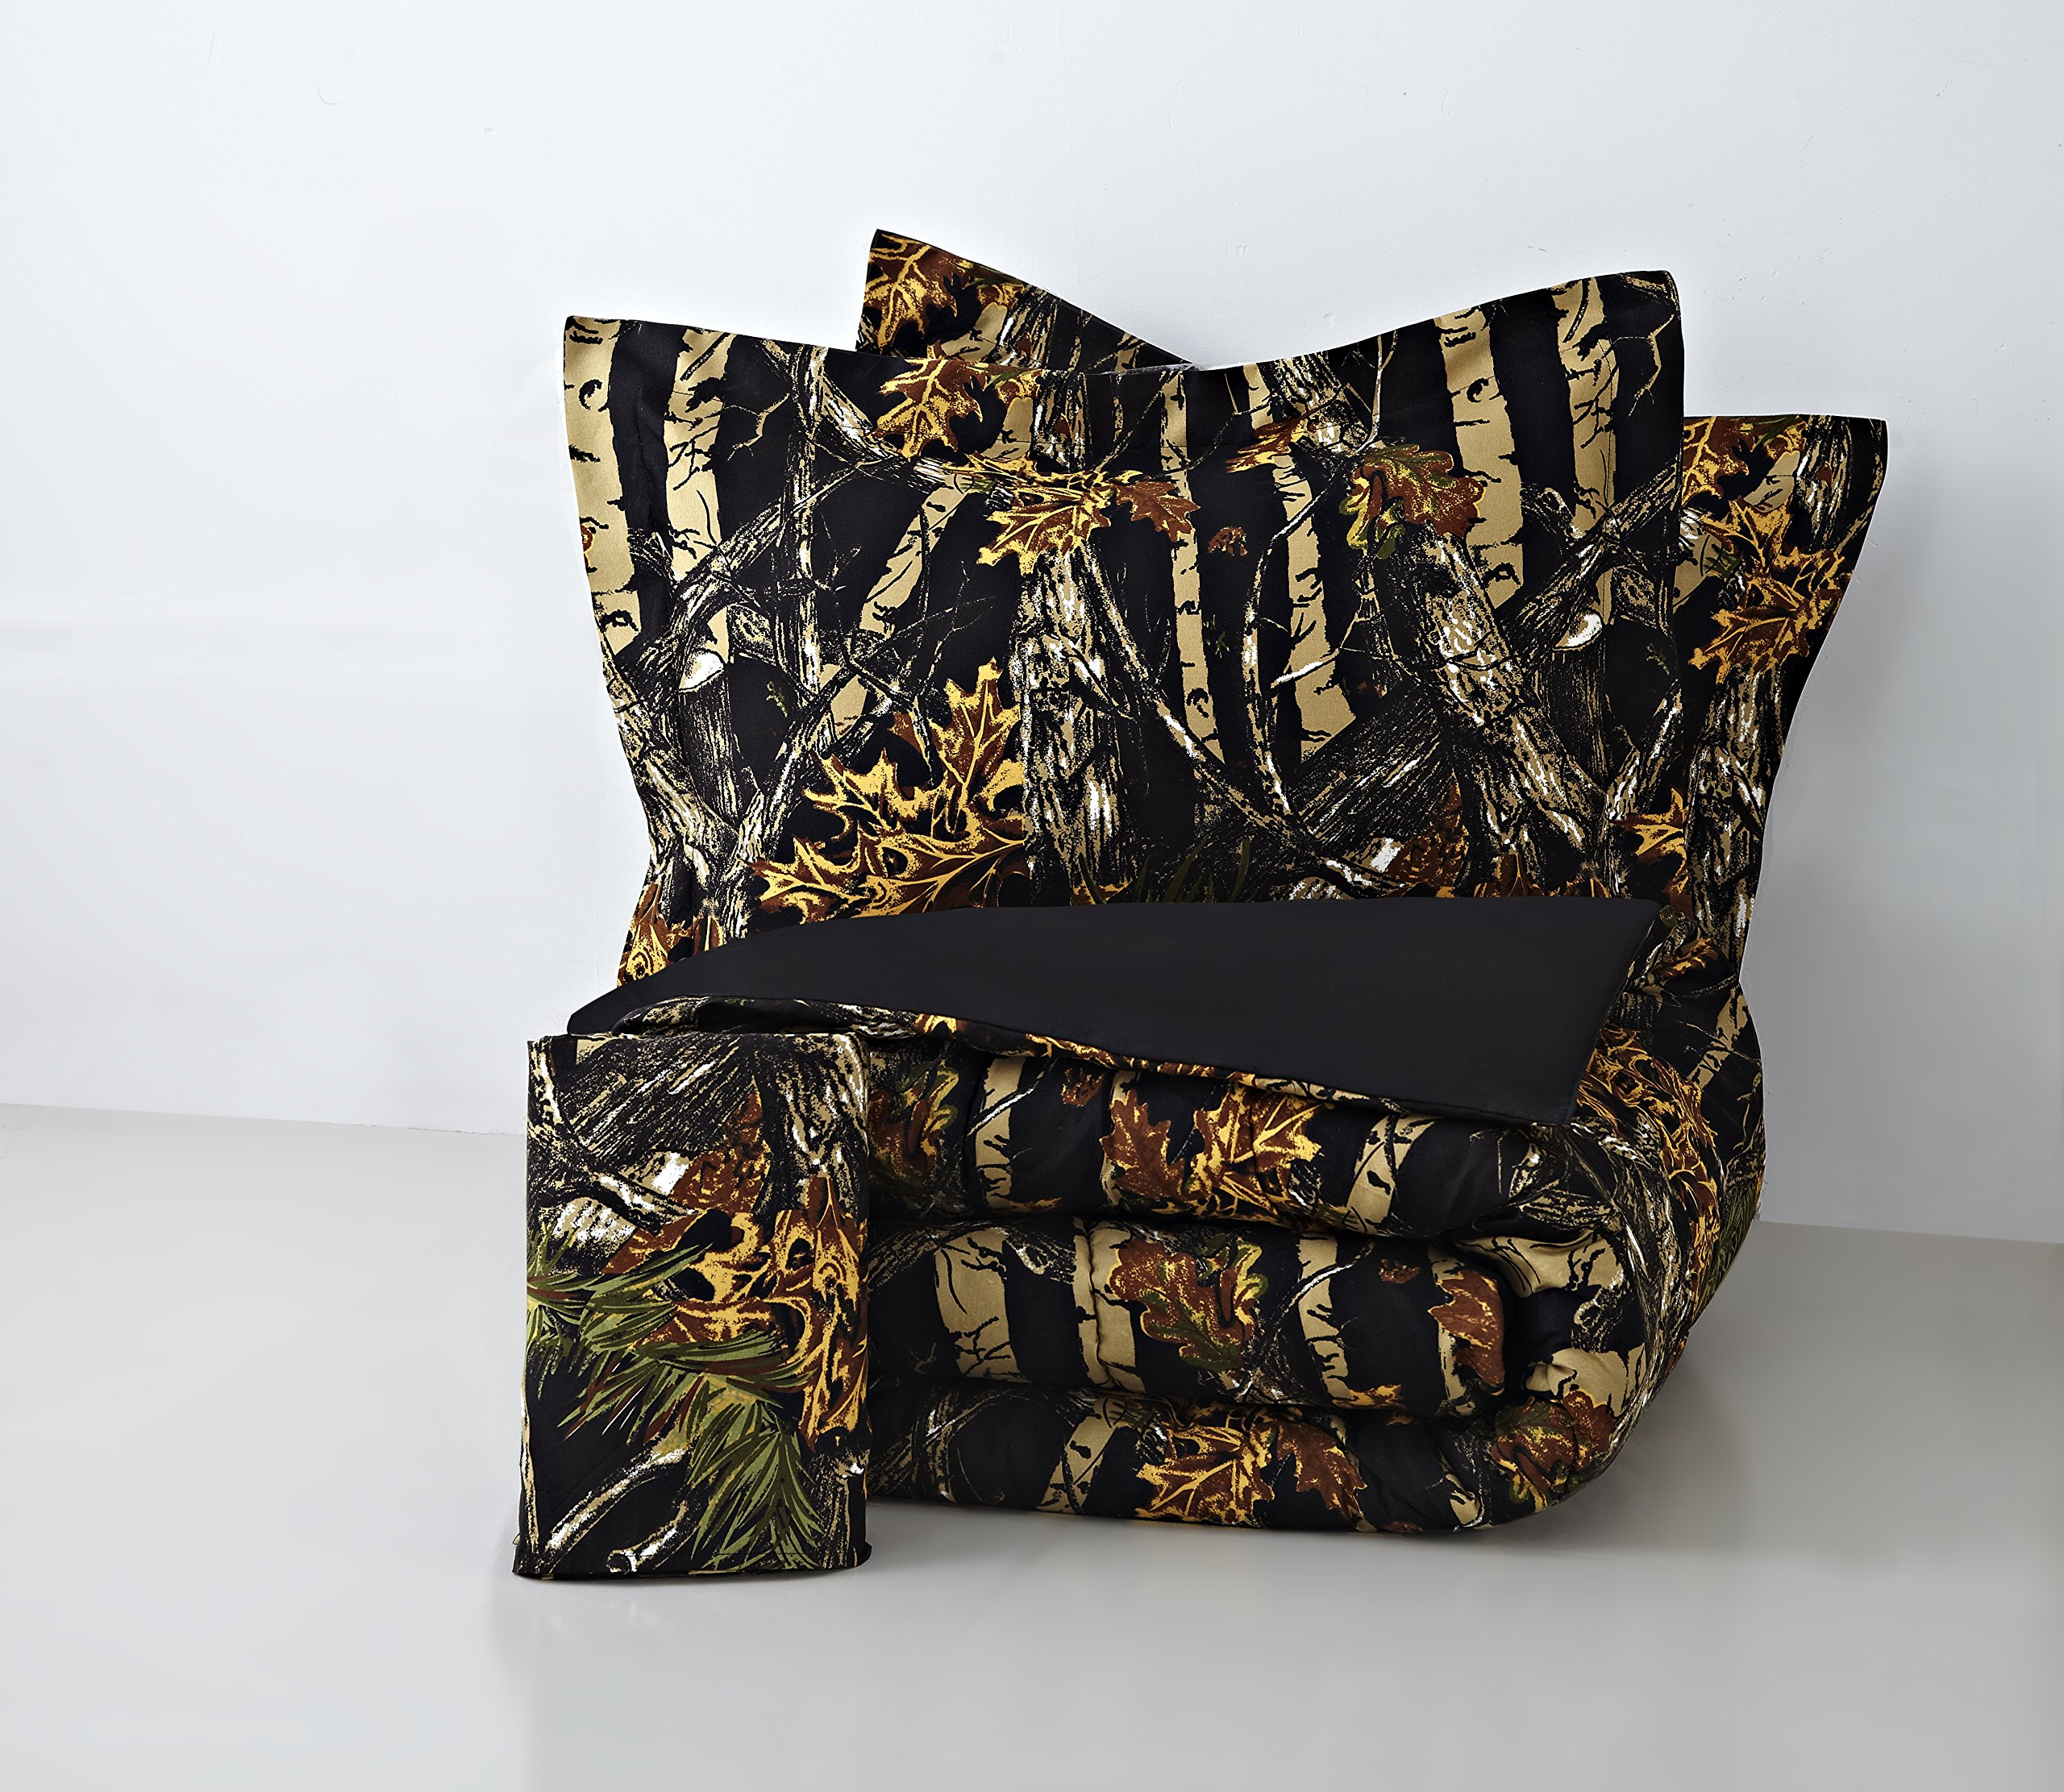 Regal Comfort The Woods Black Camouflage Queen 4 Piece Premium Luxury Comforter, Bed Skirt, and 2 Pillow Shams Set - Camo Bedding Set For Hunters Cabin or Rustic Lodge Teens Boys and Girls